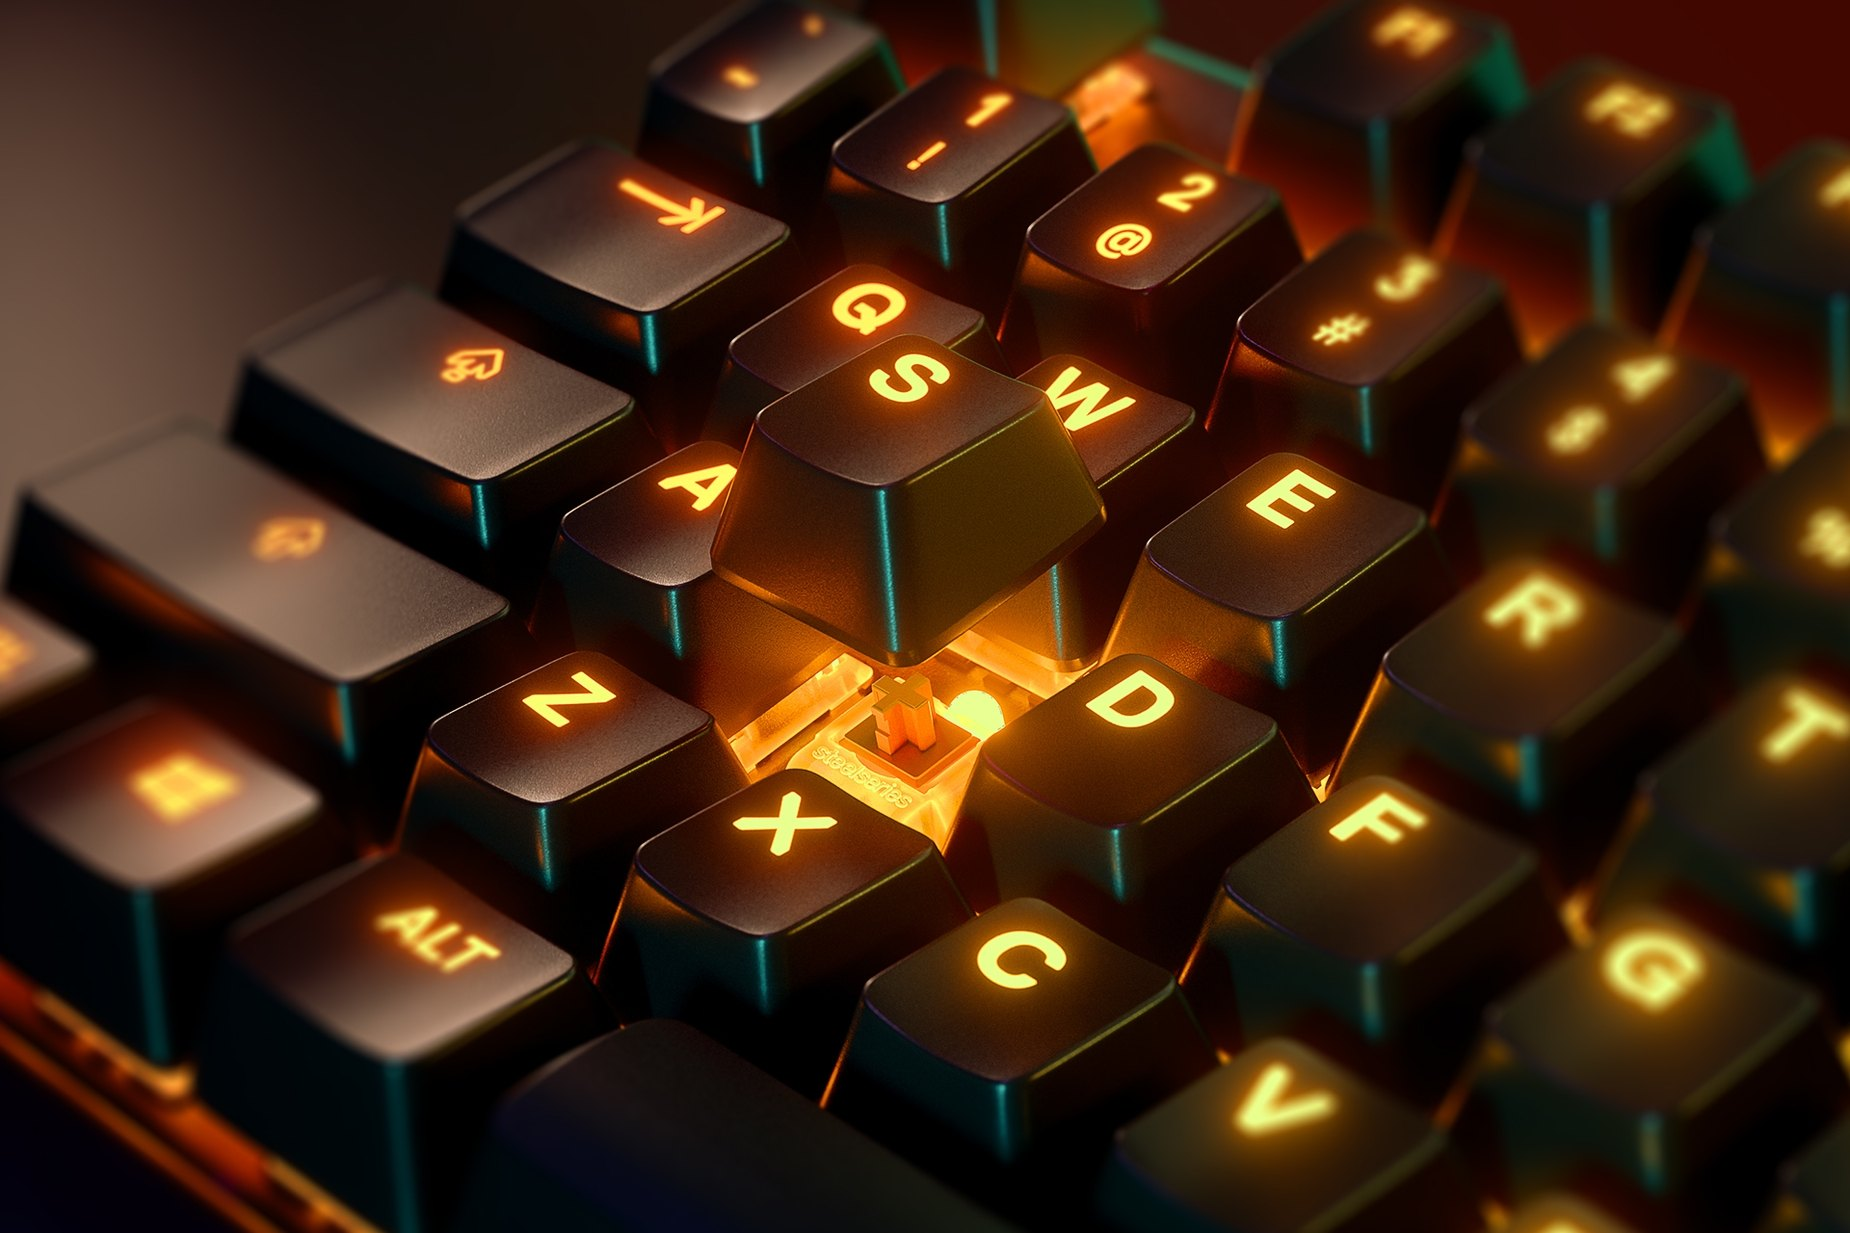 Zoomed in view of a single key on the French-Apex 7 (Brown Switch) gaming keyboard, the key is raised up to show the SteelSeries QX2 Mechanical RGB Switch underneath